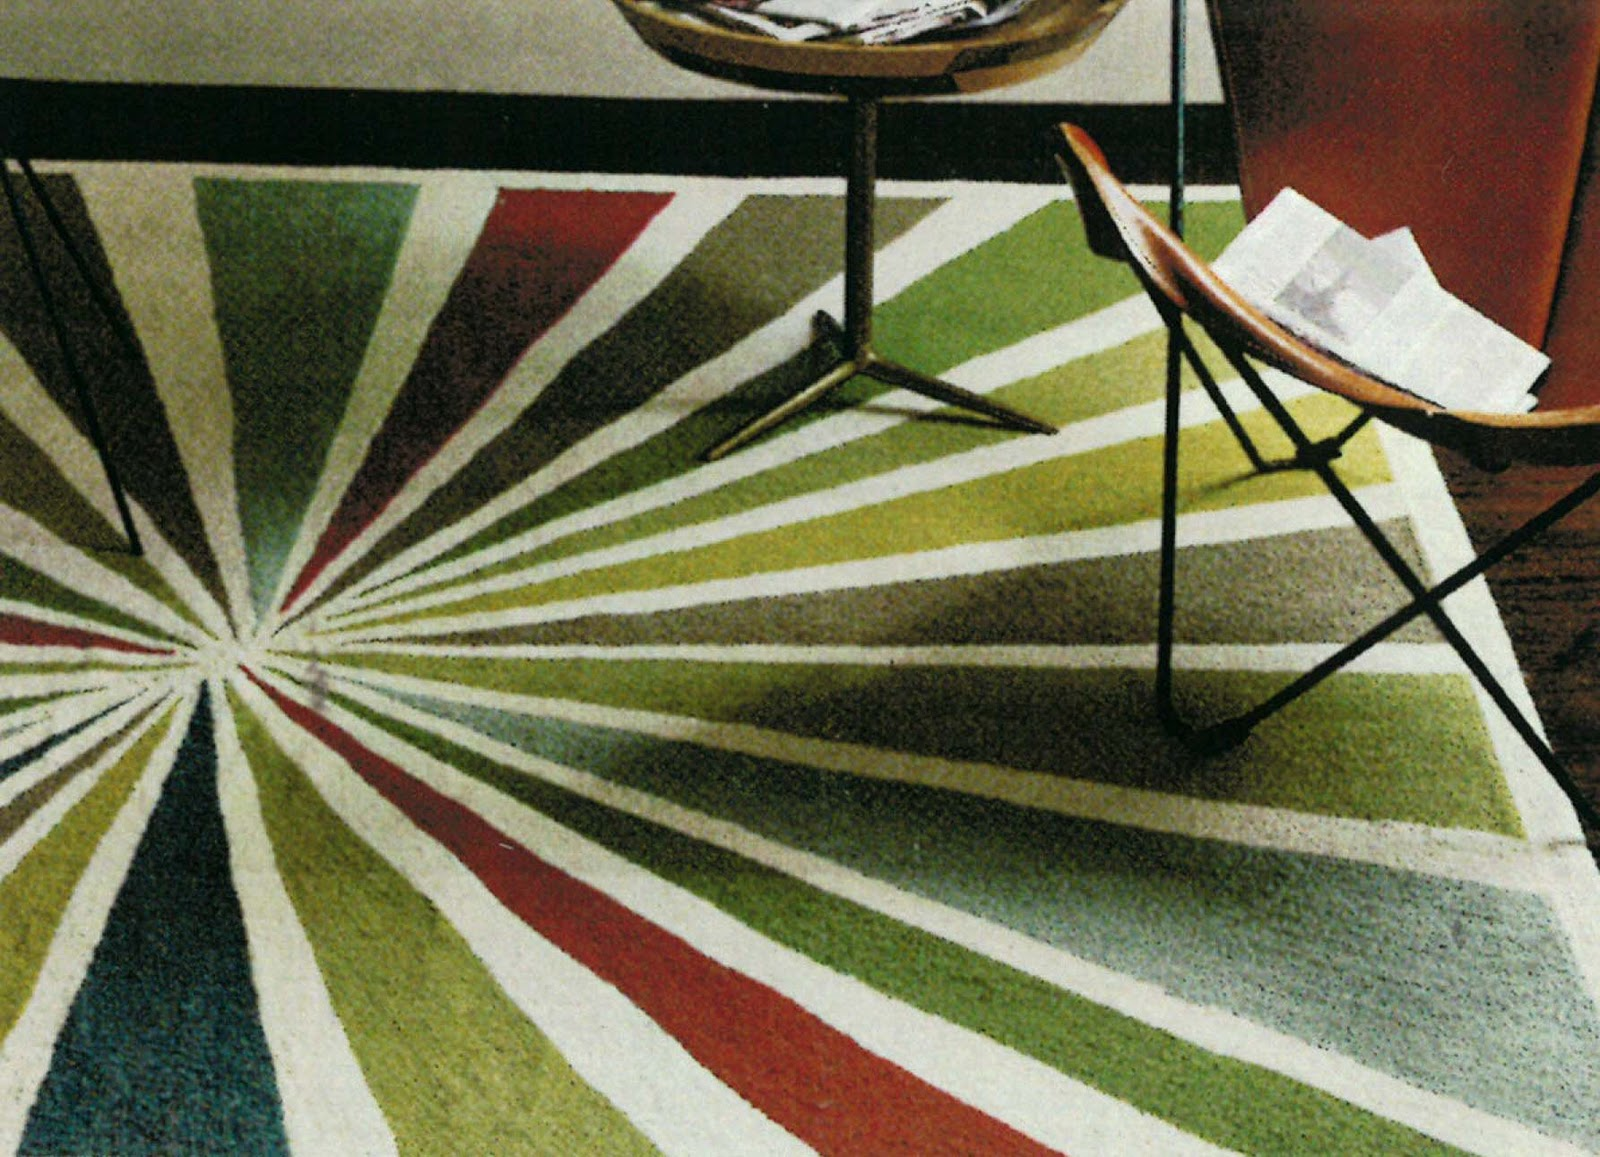 alice kennedy design how cool is this rug -  i was excited to see her featured in the rugs by artists section ofthe new catalog now i need to find a place in my home for one of these rugs